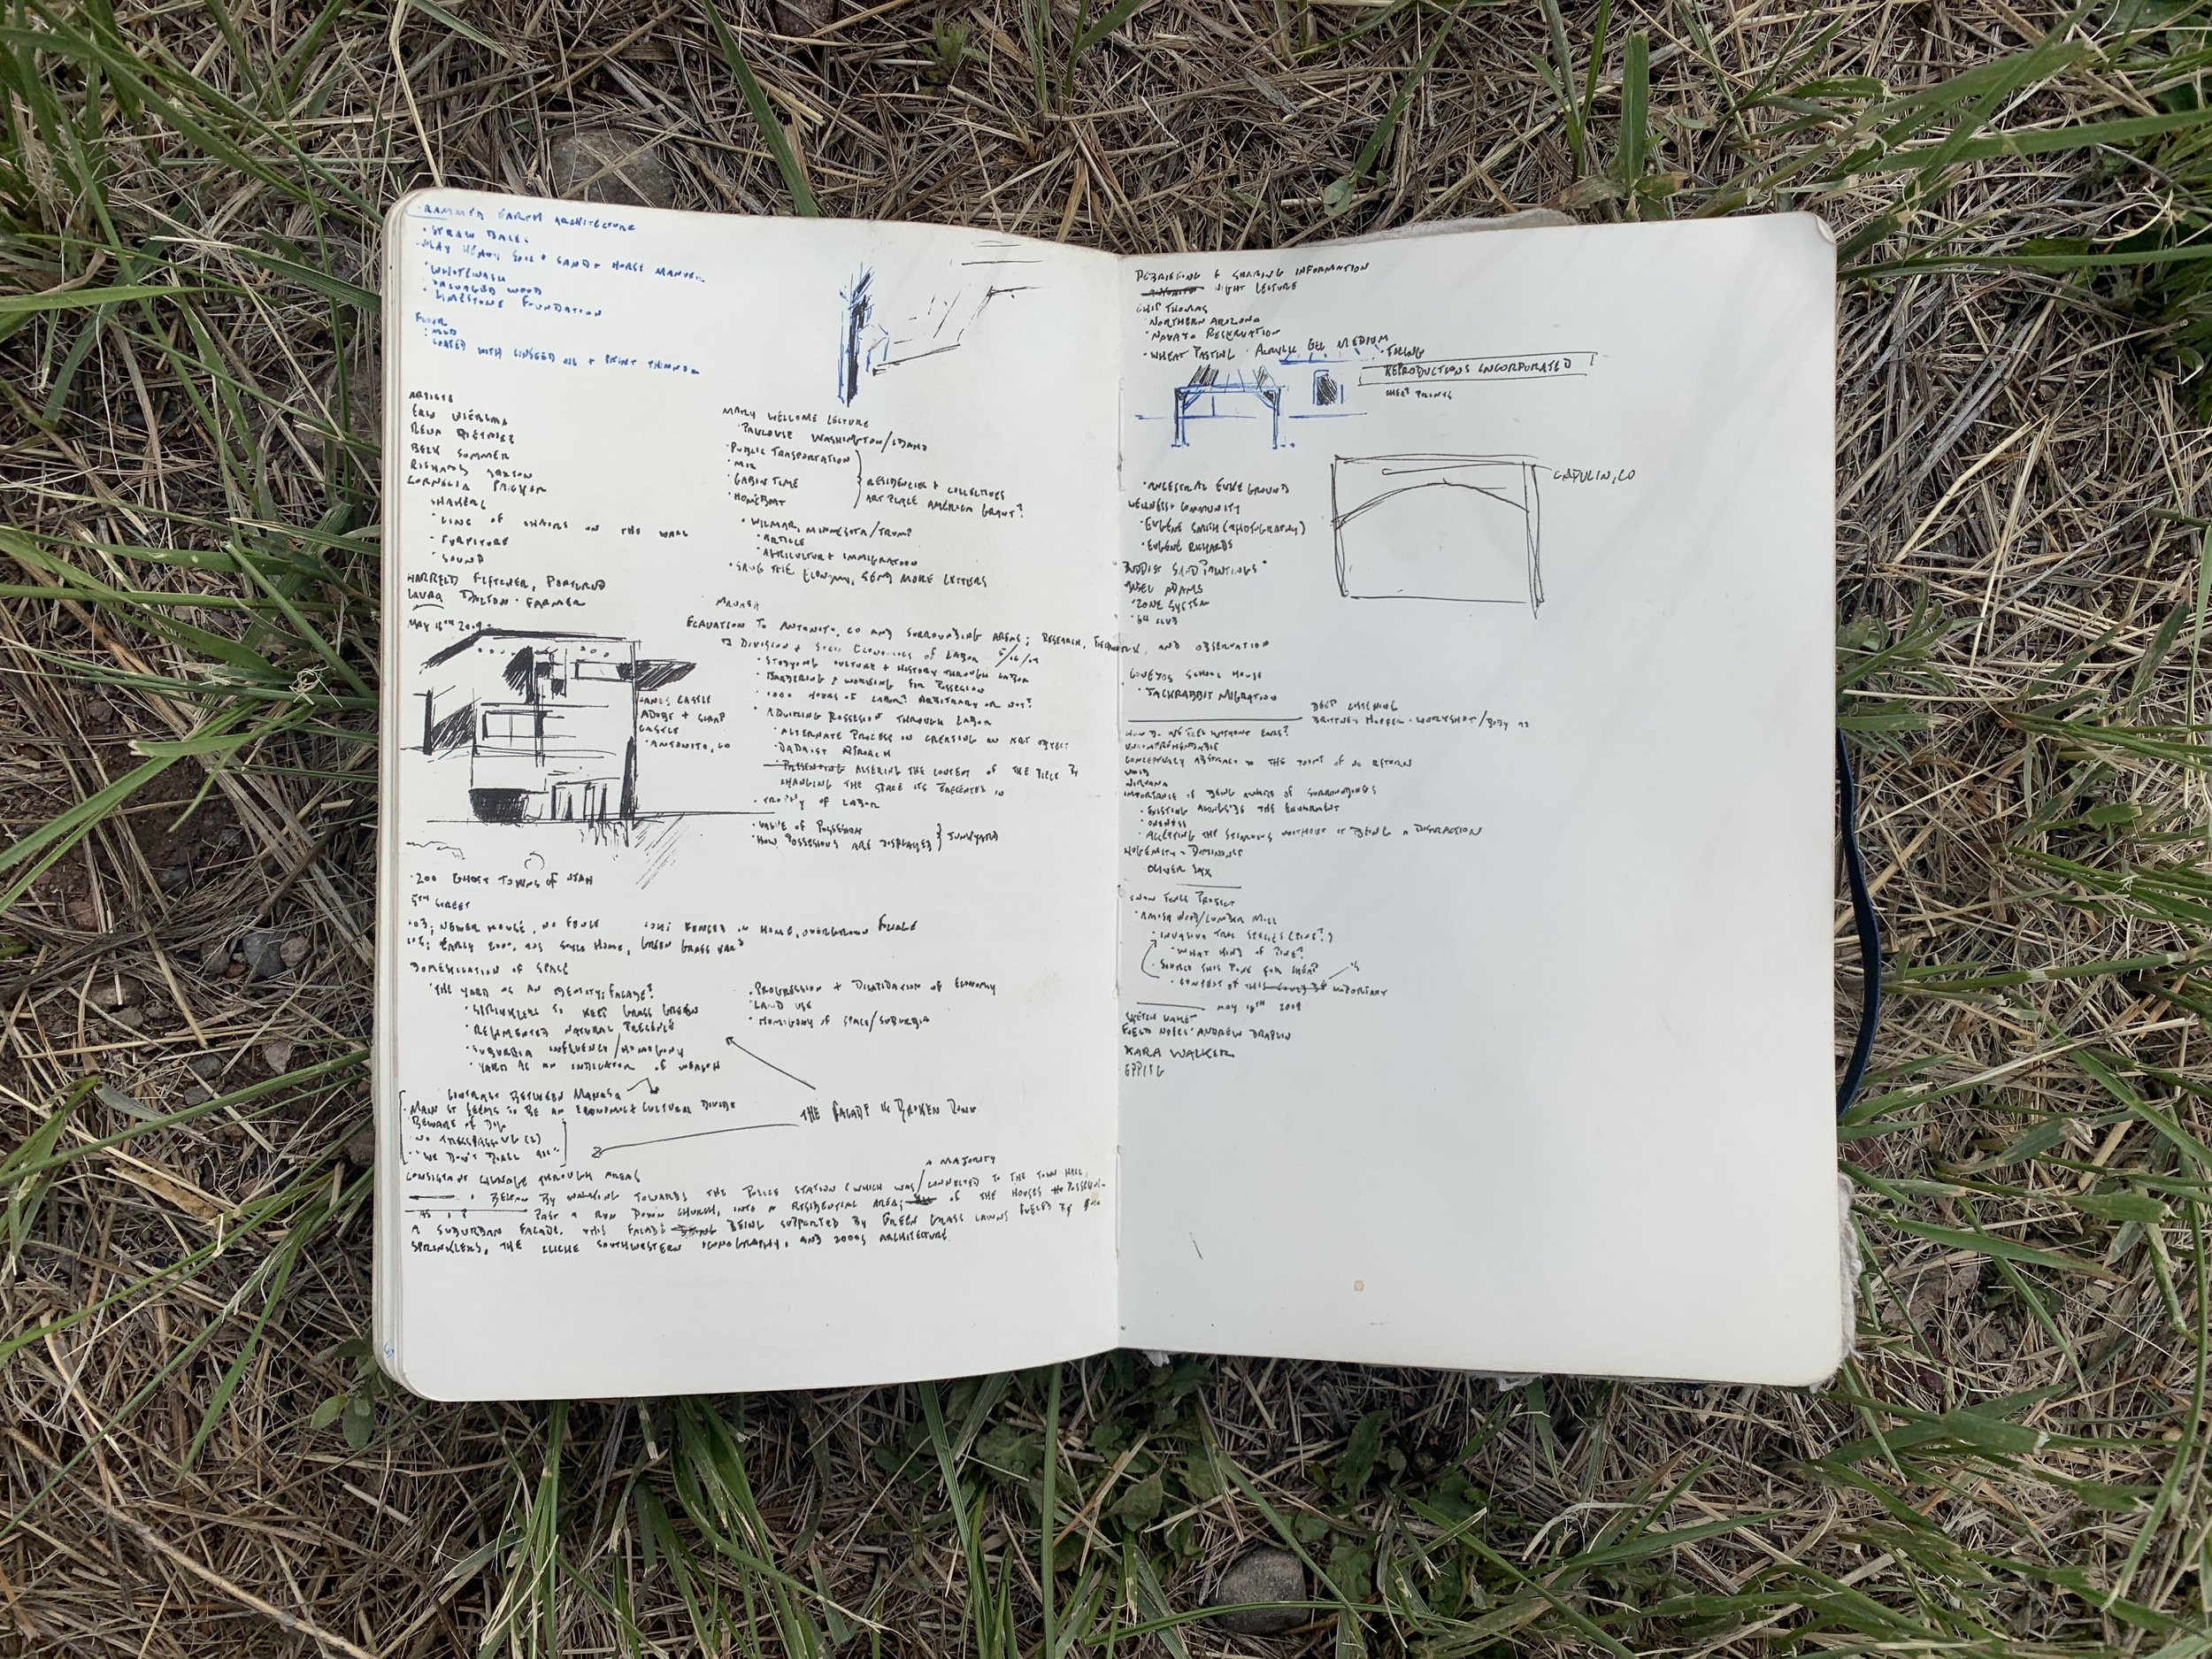 Notes on rammed earth architecture, exercise with Lisa and John in Manasa, lecture notes for Chip and Mary Welcome, observations from San Luis Valley excursion.